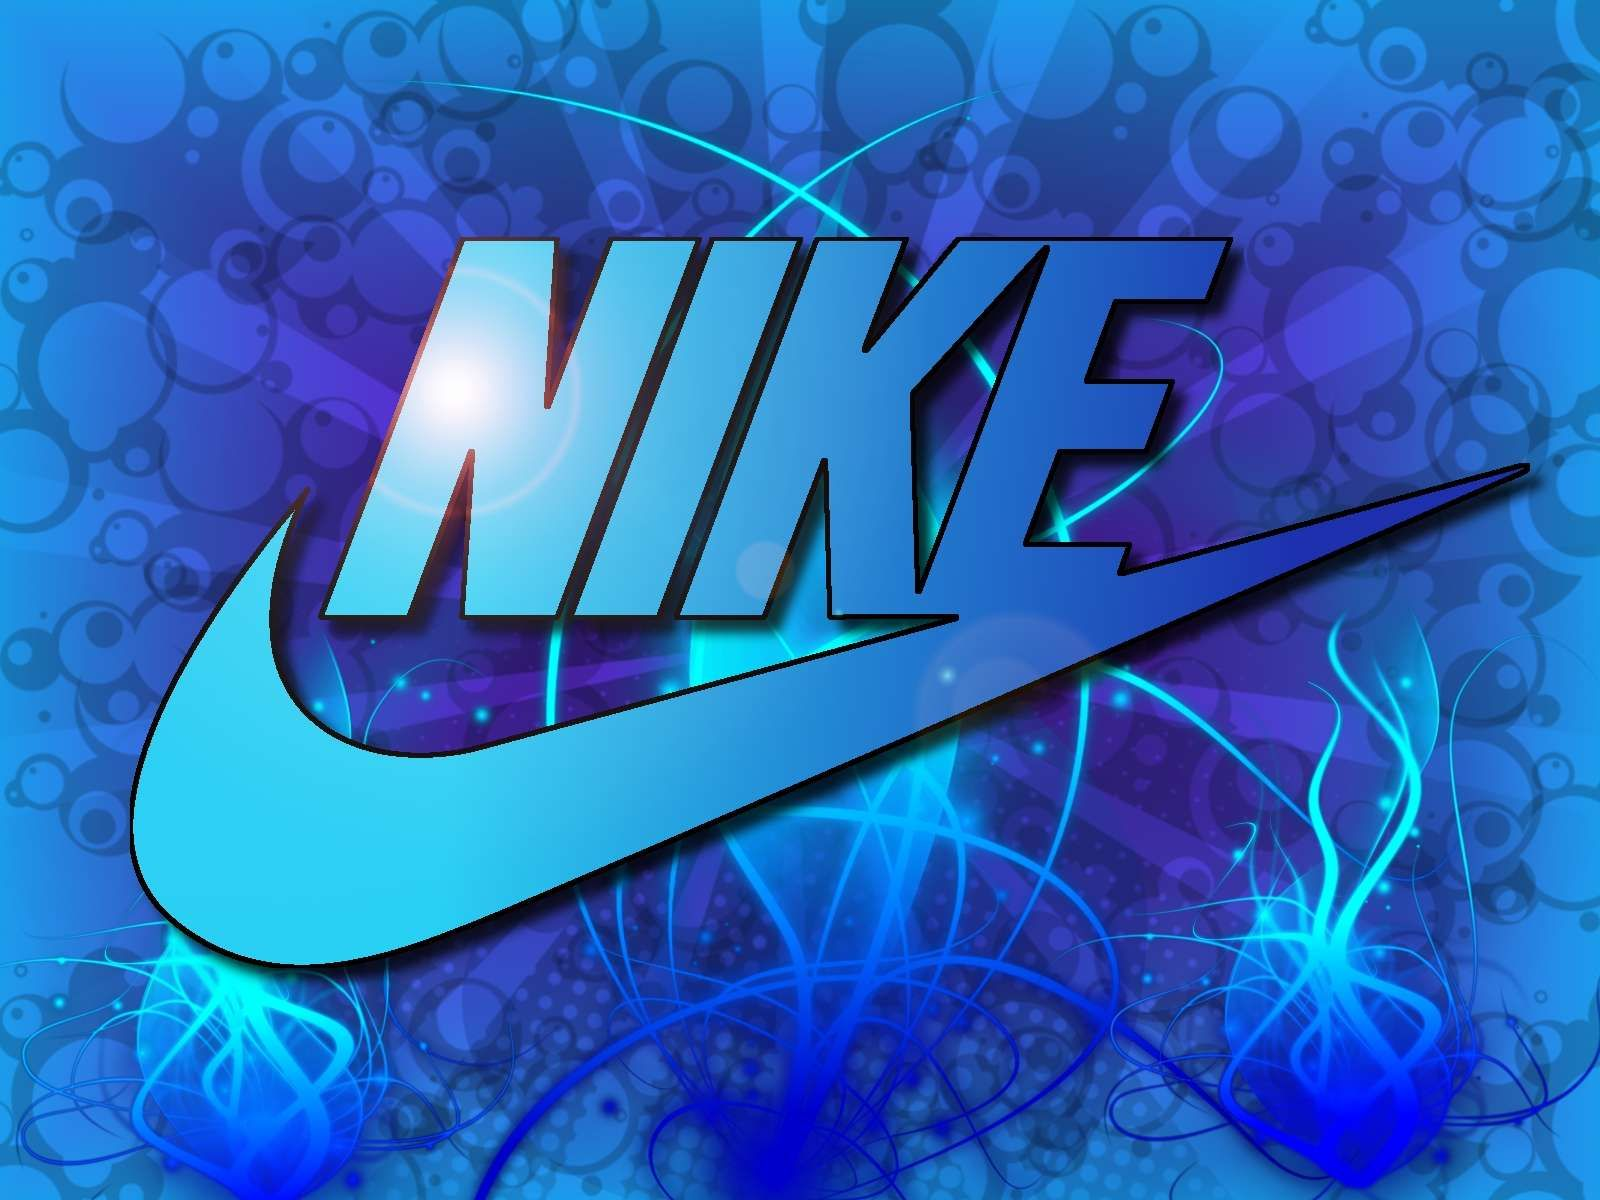 Cool Wallpapers Find Best Latest Cool Wallpapers In Hd For